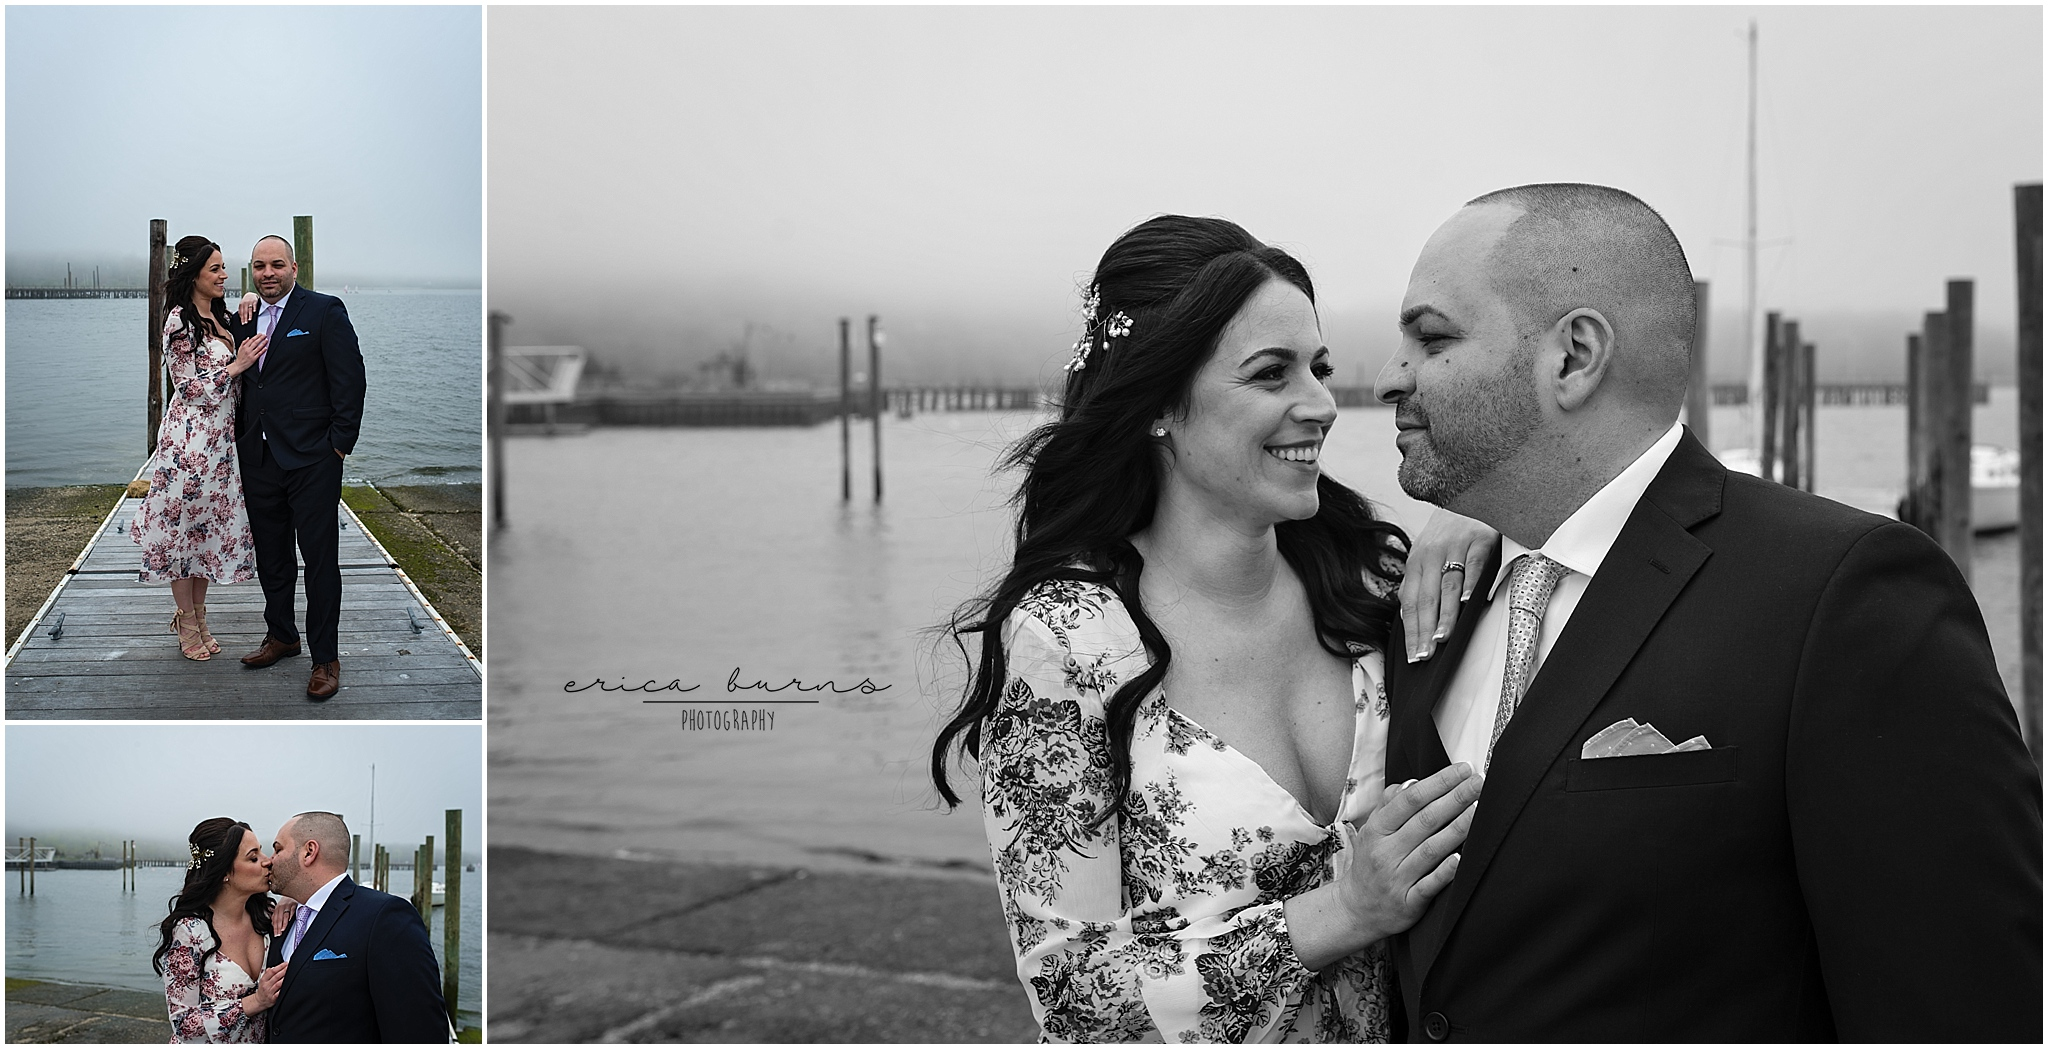 Long Island Wedding Photography | Erica Burns Photography